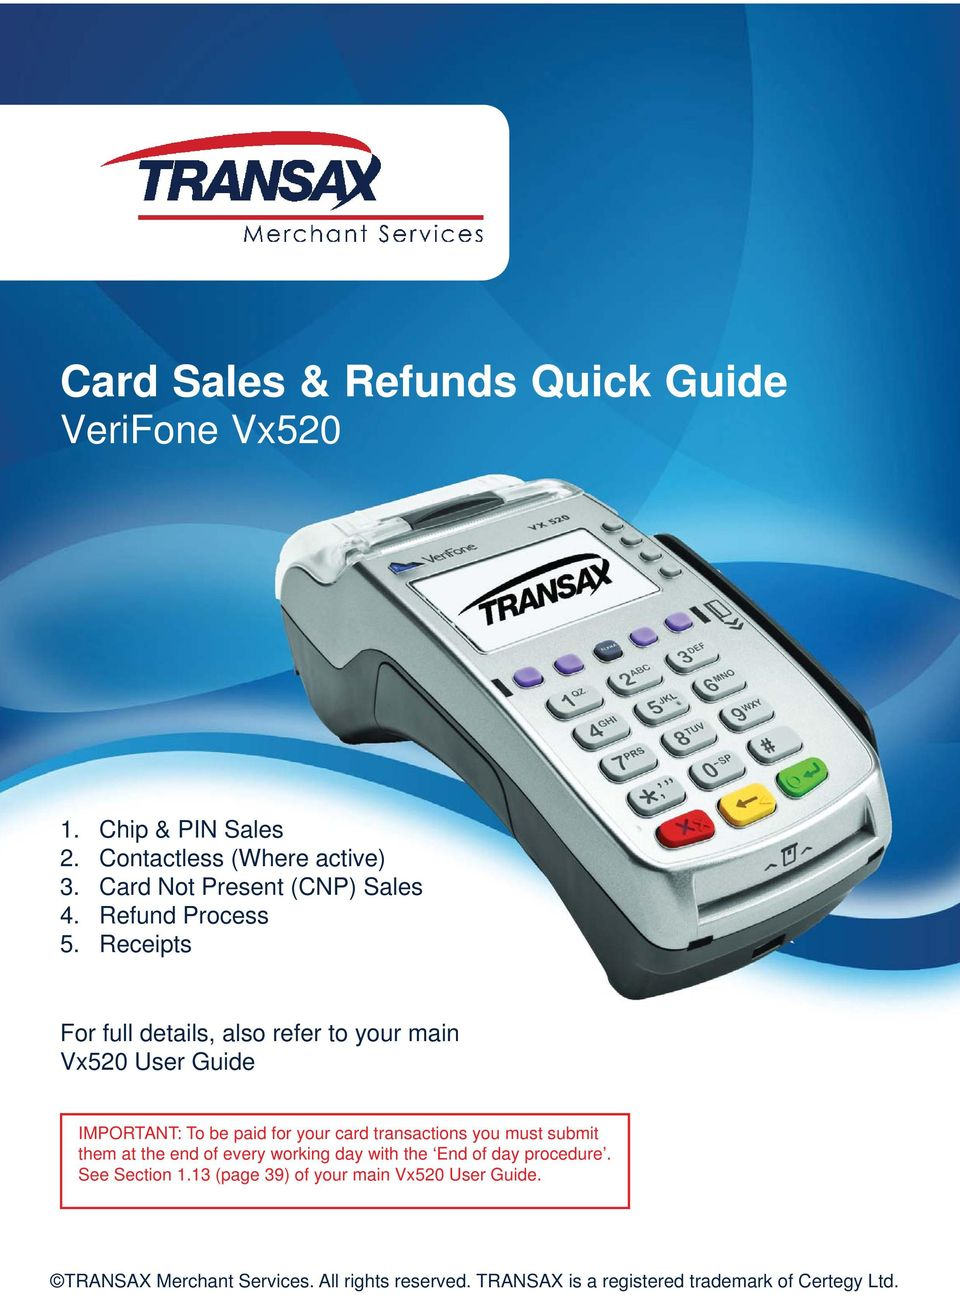 Receipts For full details, also refer to your main Vx520 User Guide IMPORTANT: To be paid for your card transactions you